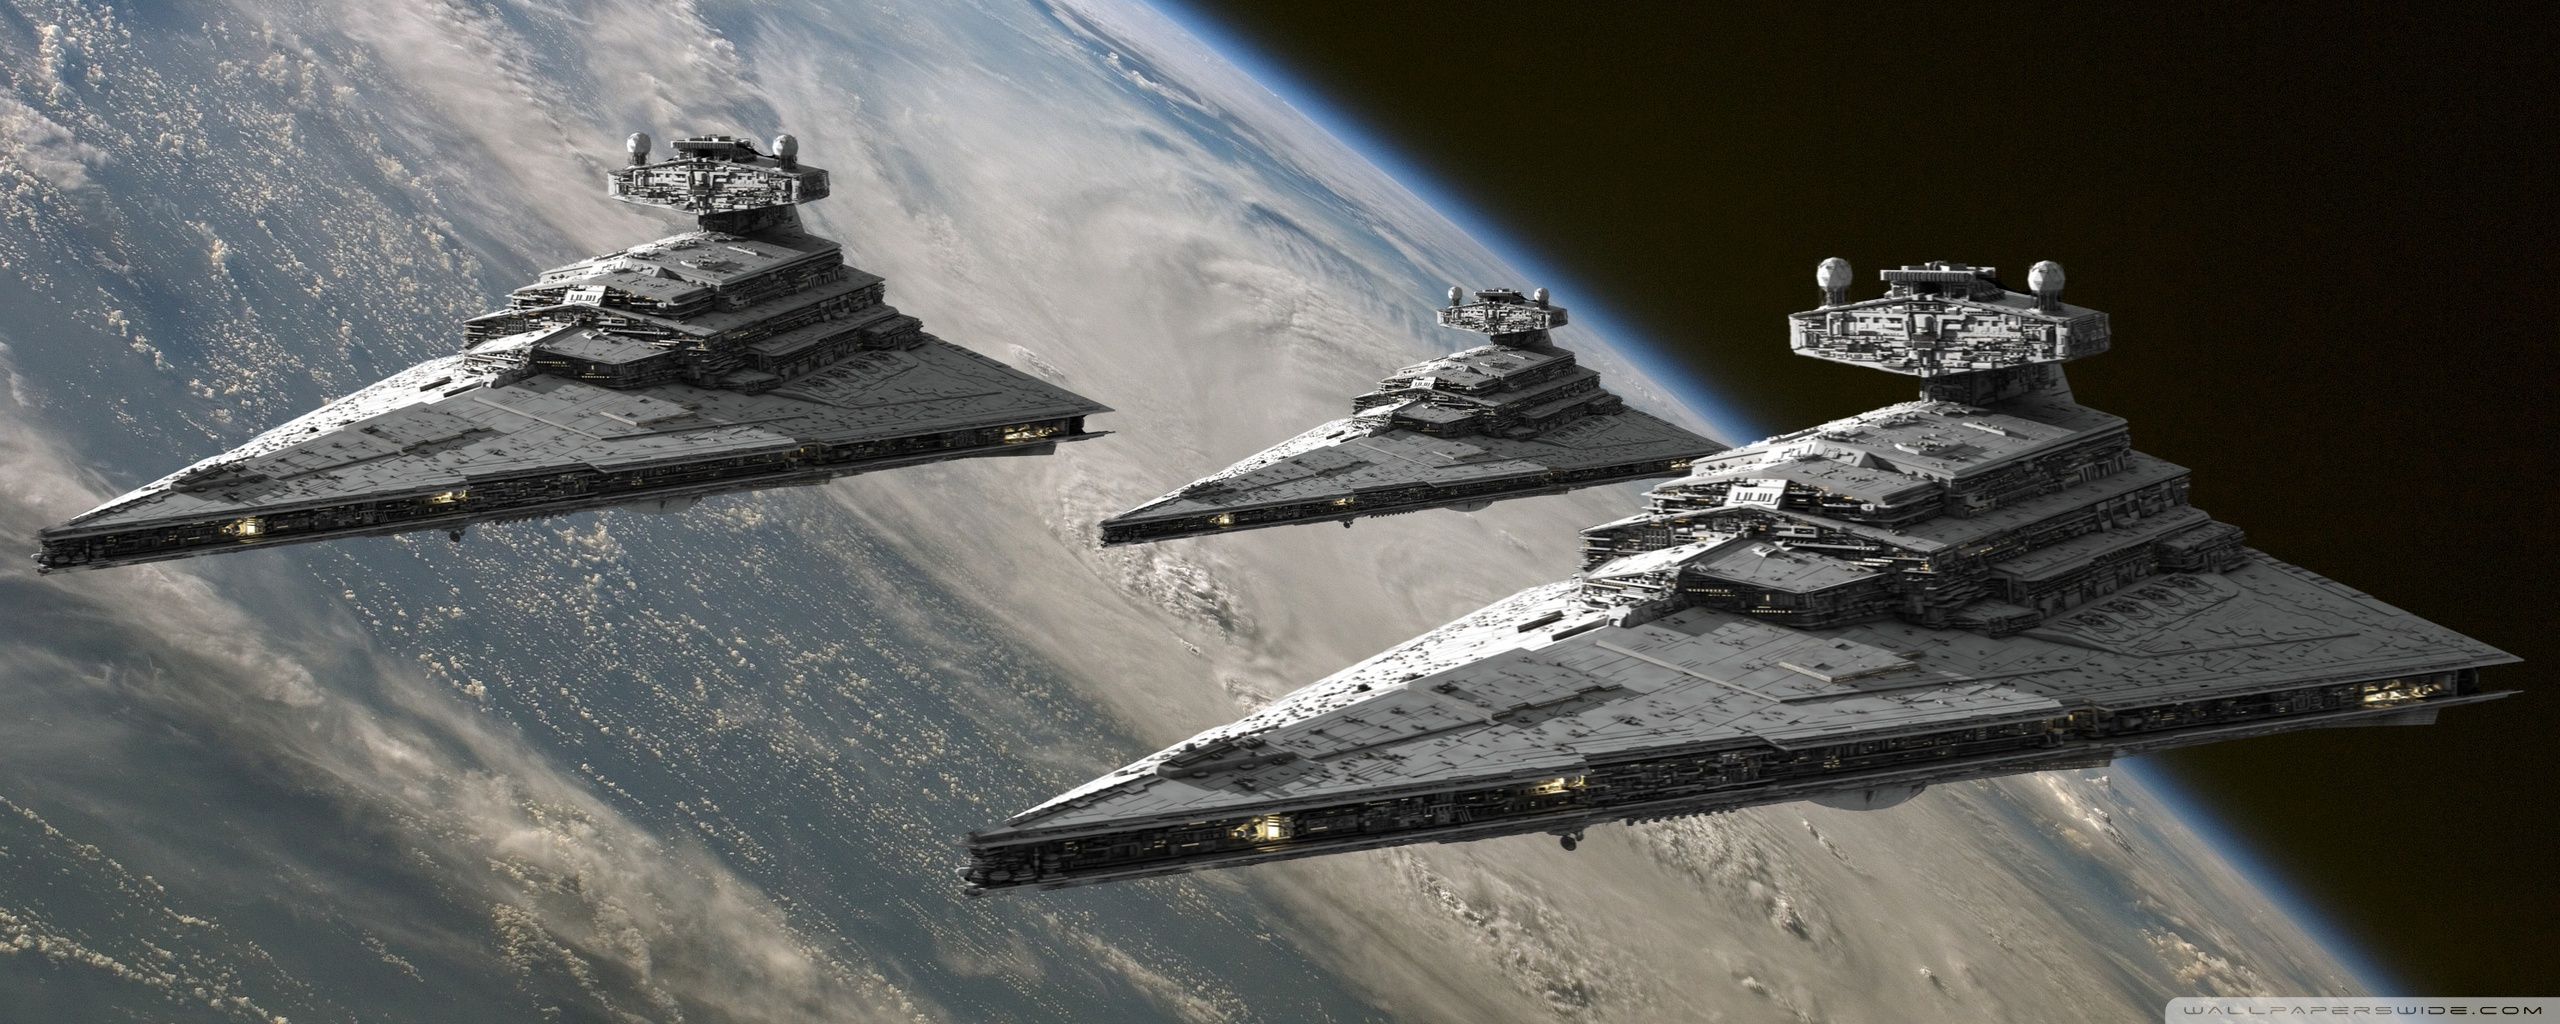 Fleet Of Star Destroyers 2560x1024 Wallpaper Teahub Io